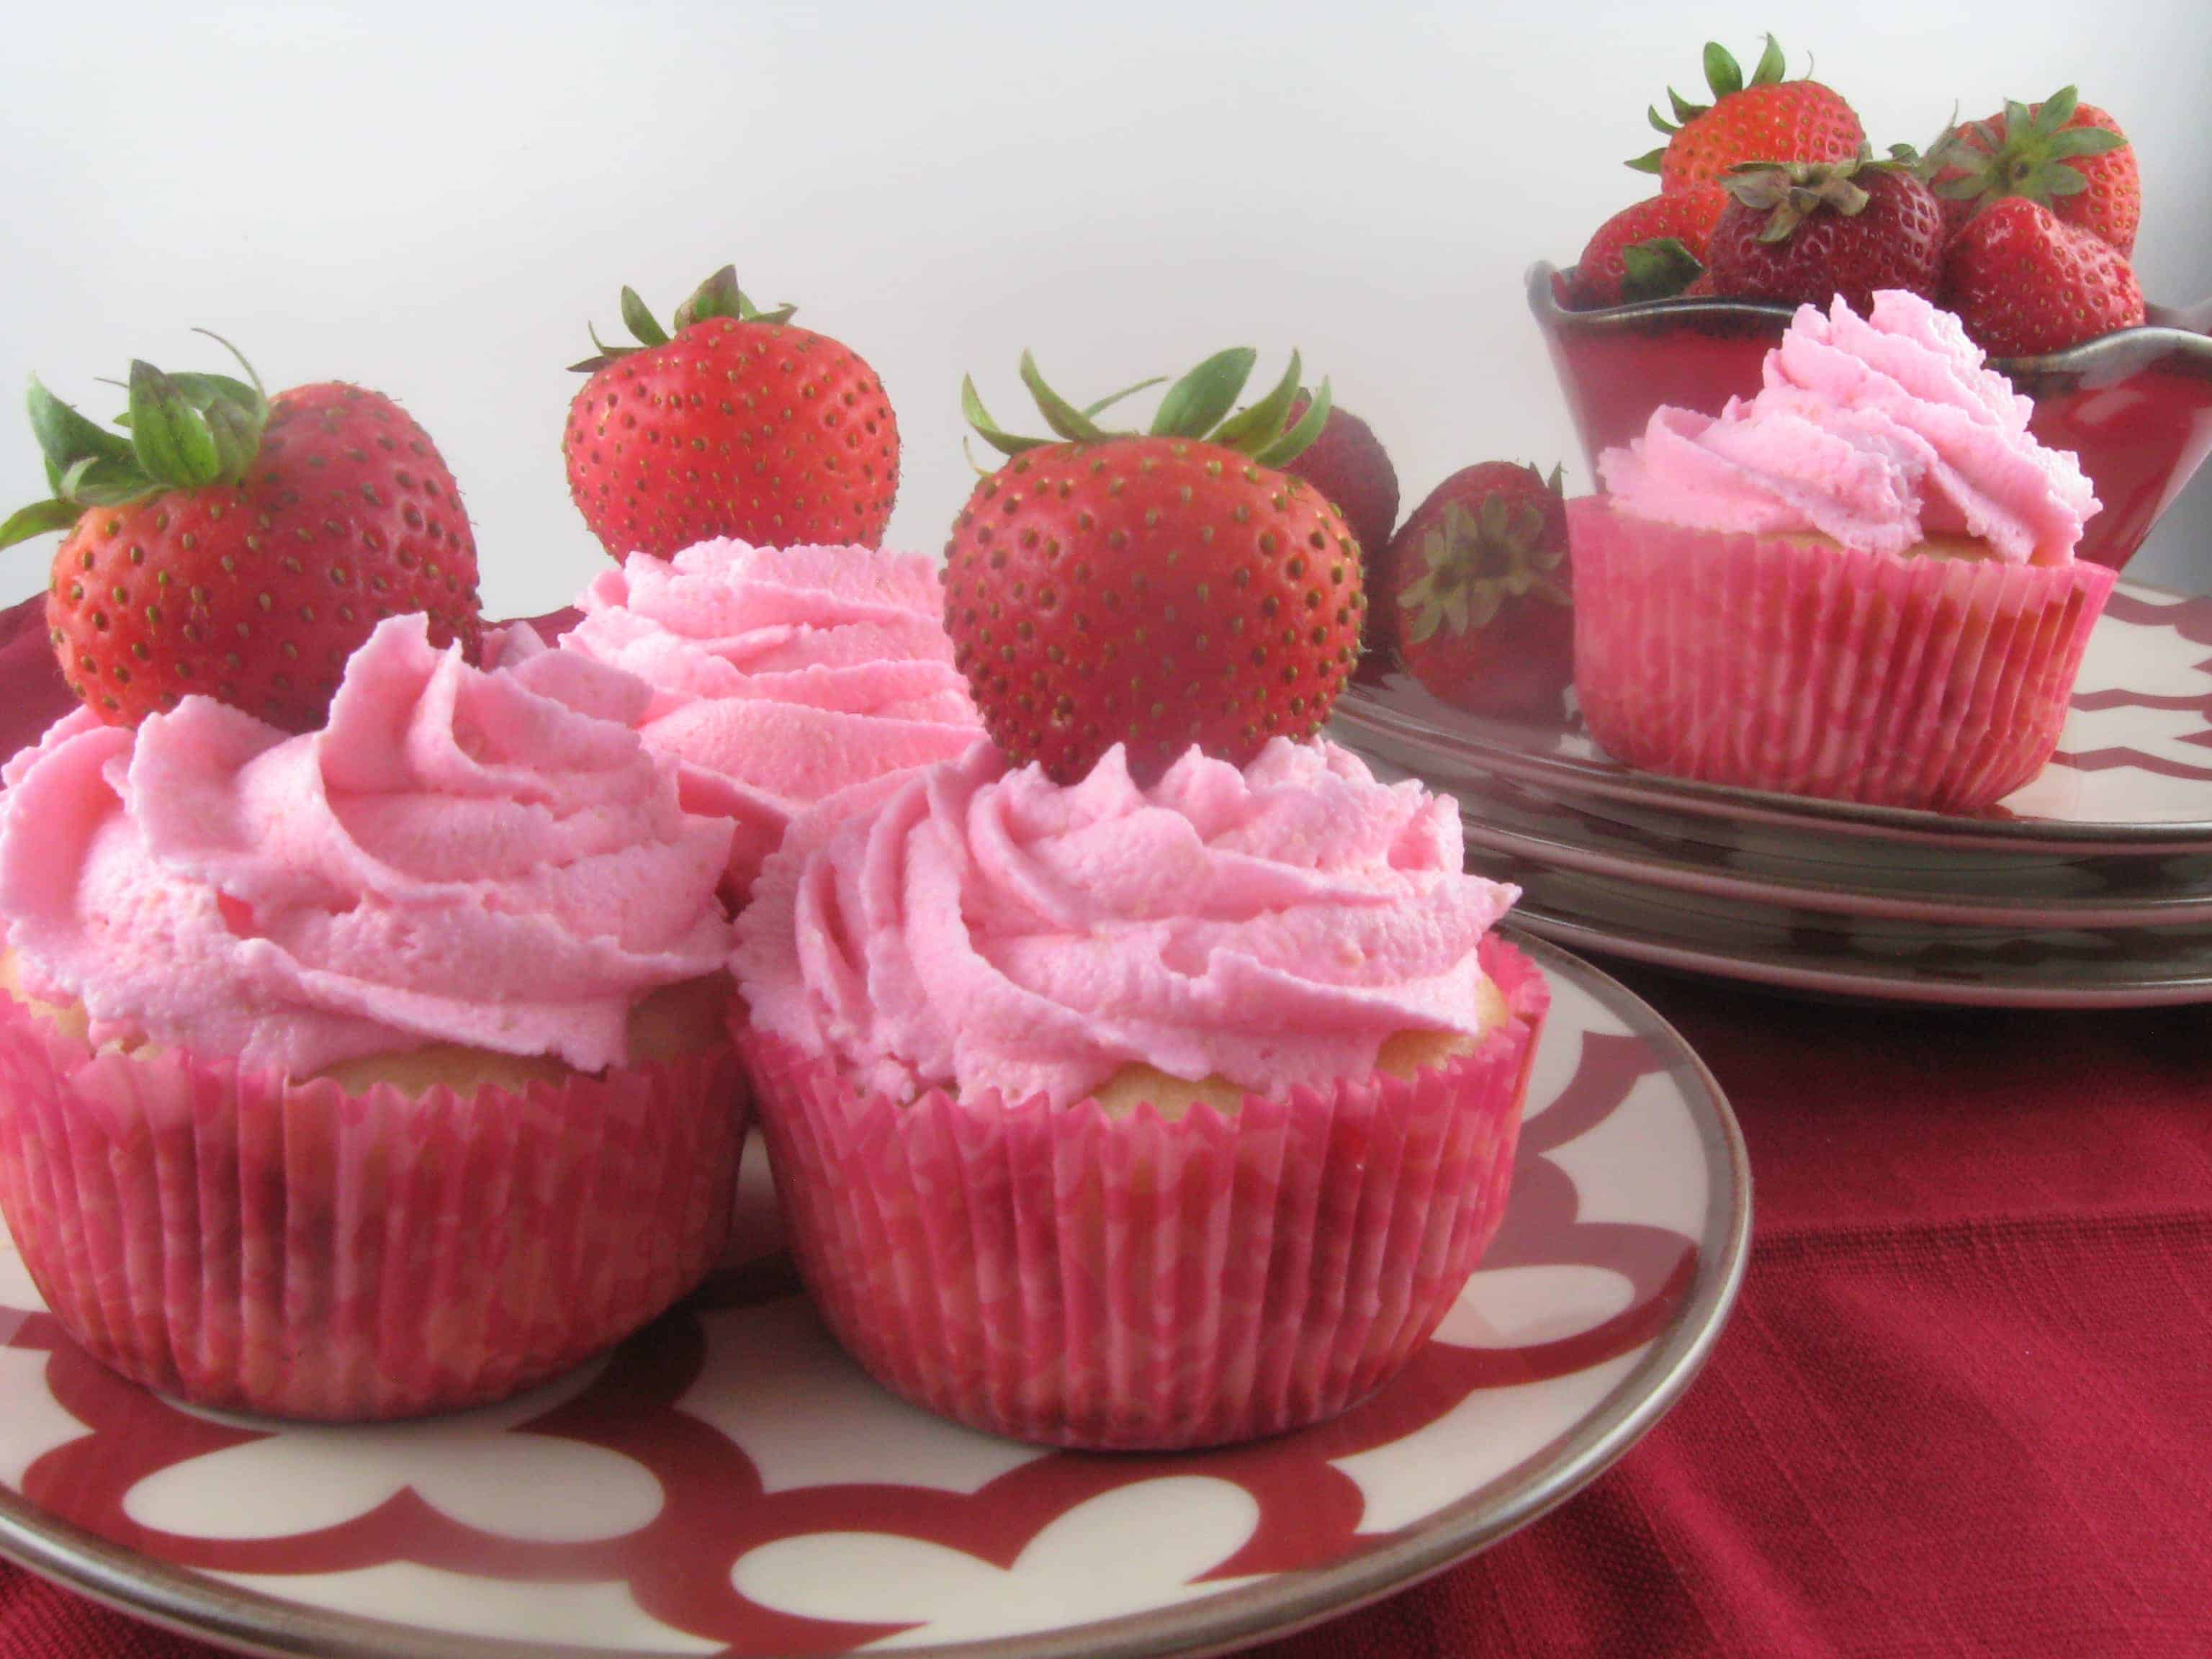 Strawberry Milk-Cakes